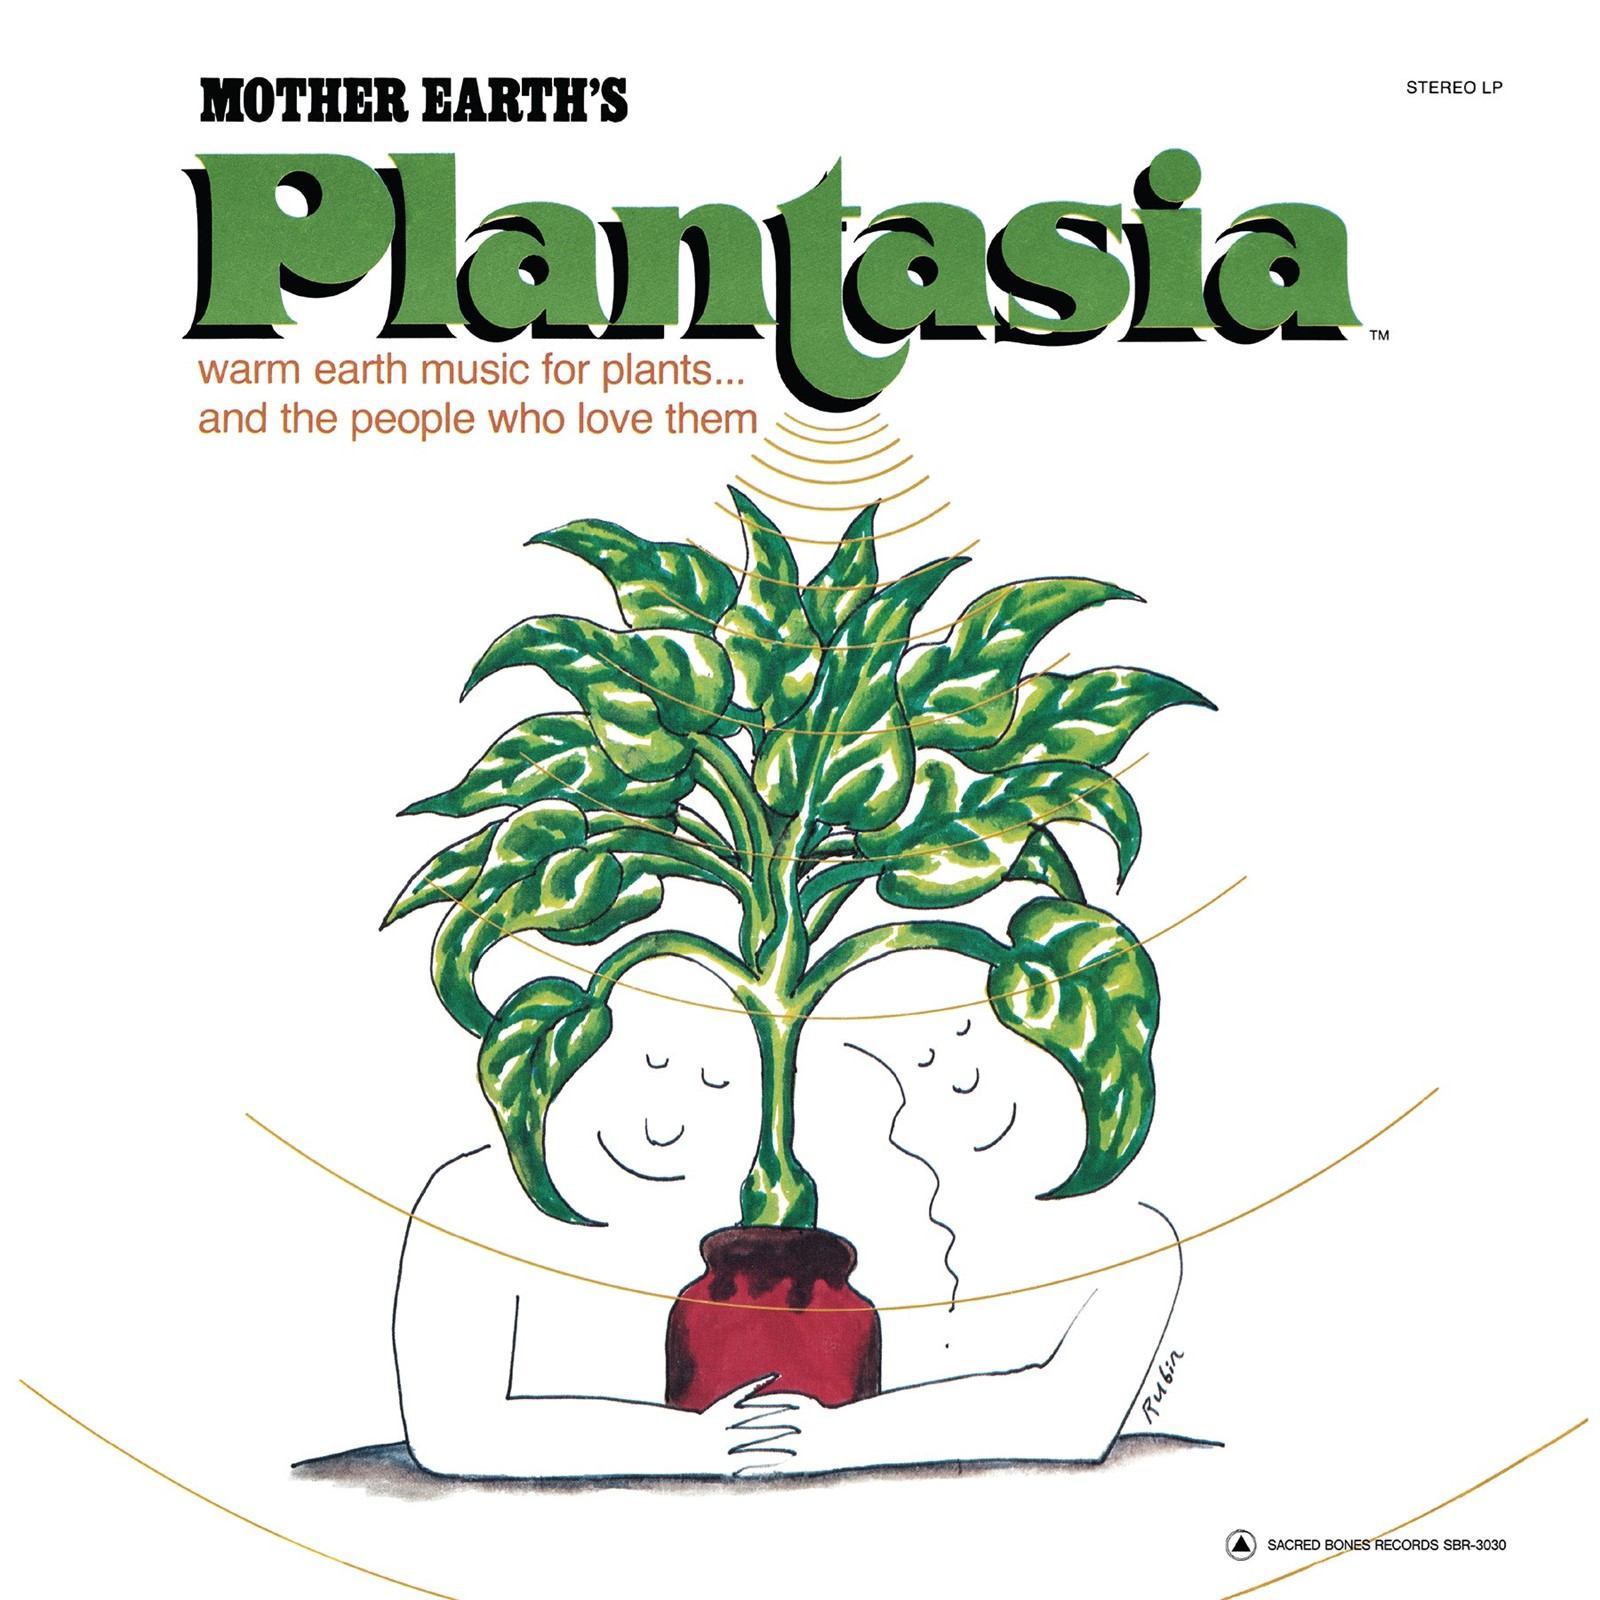 The strange story of Mort Garson's magical album Plantasia